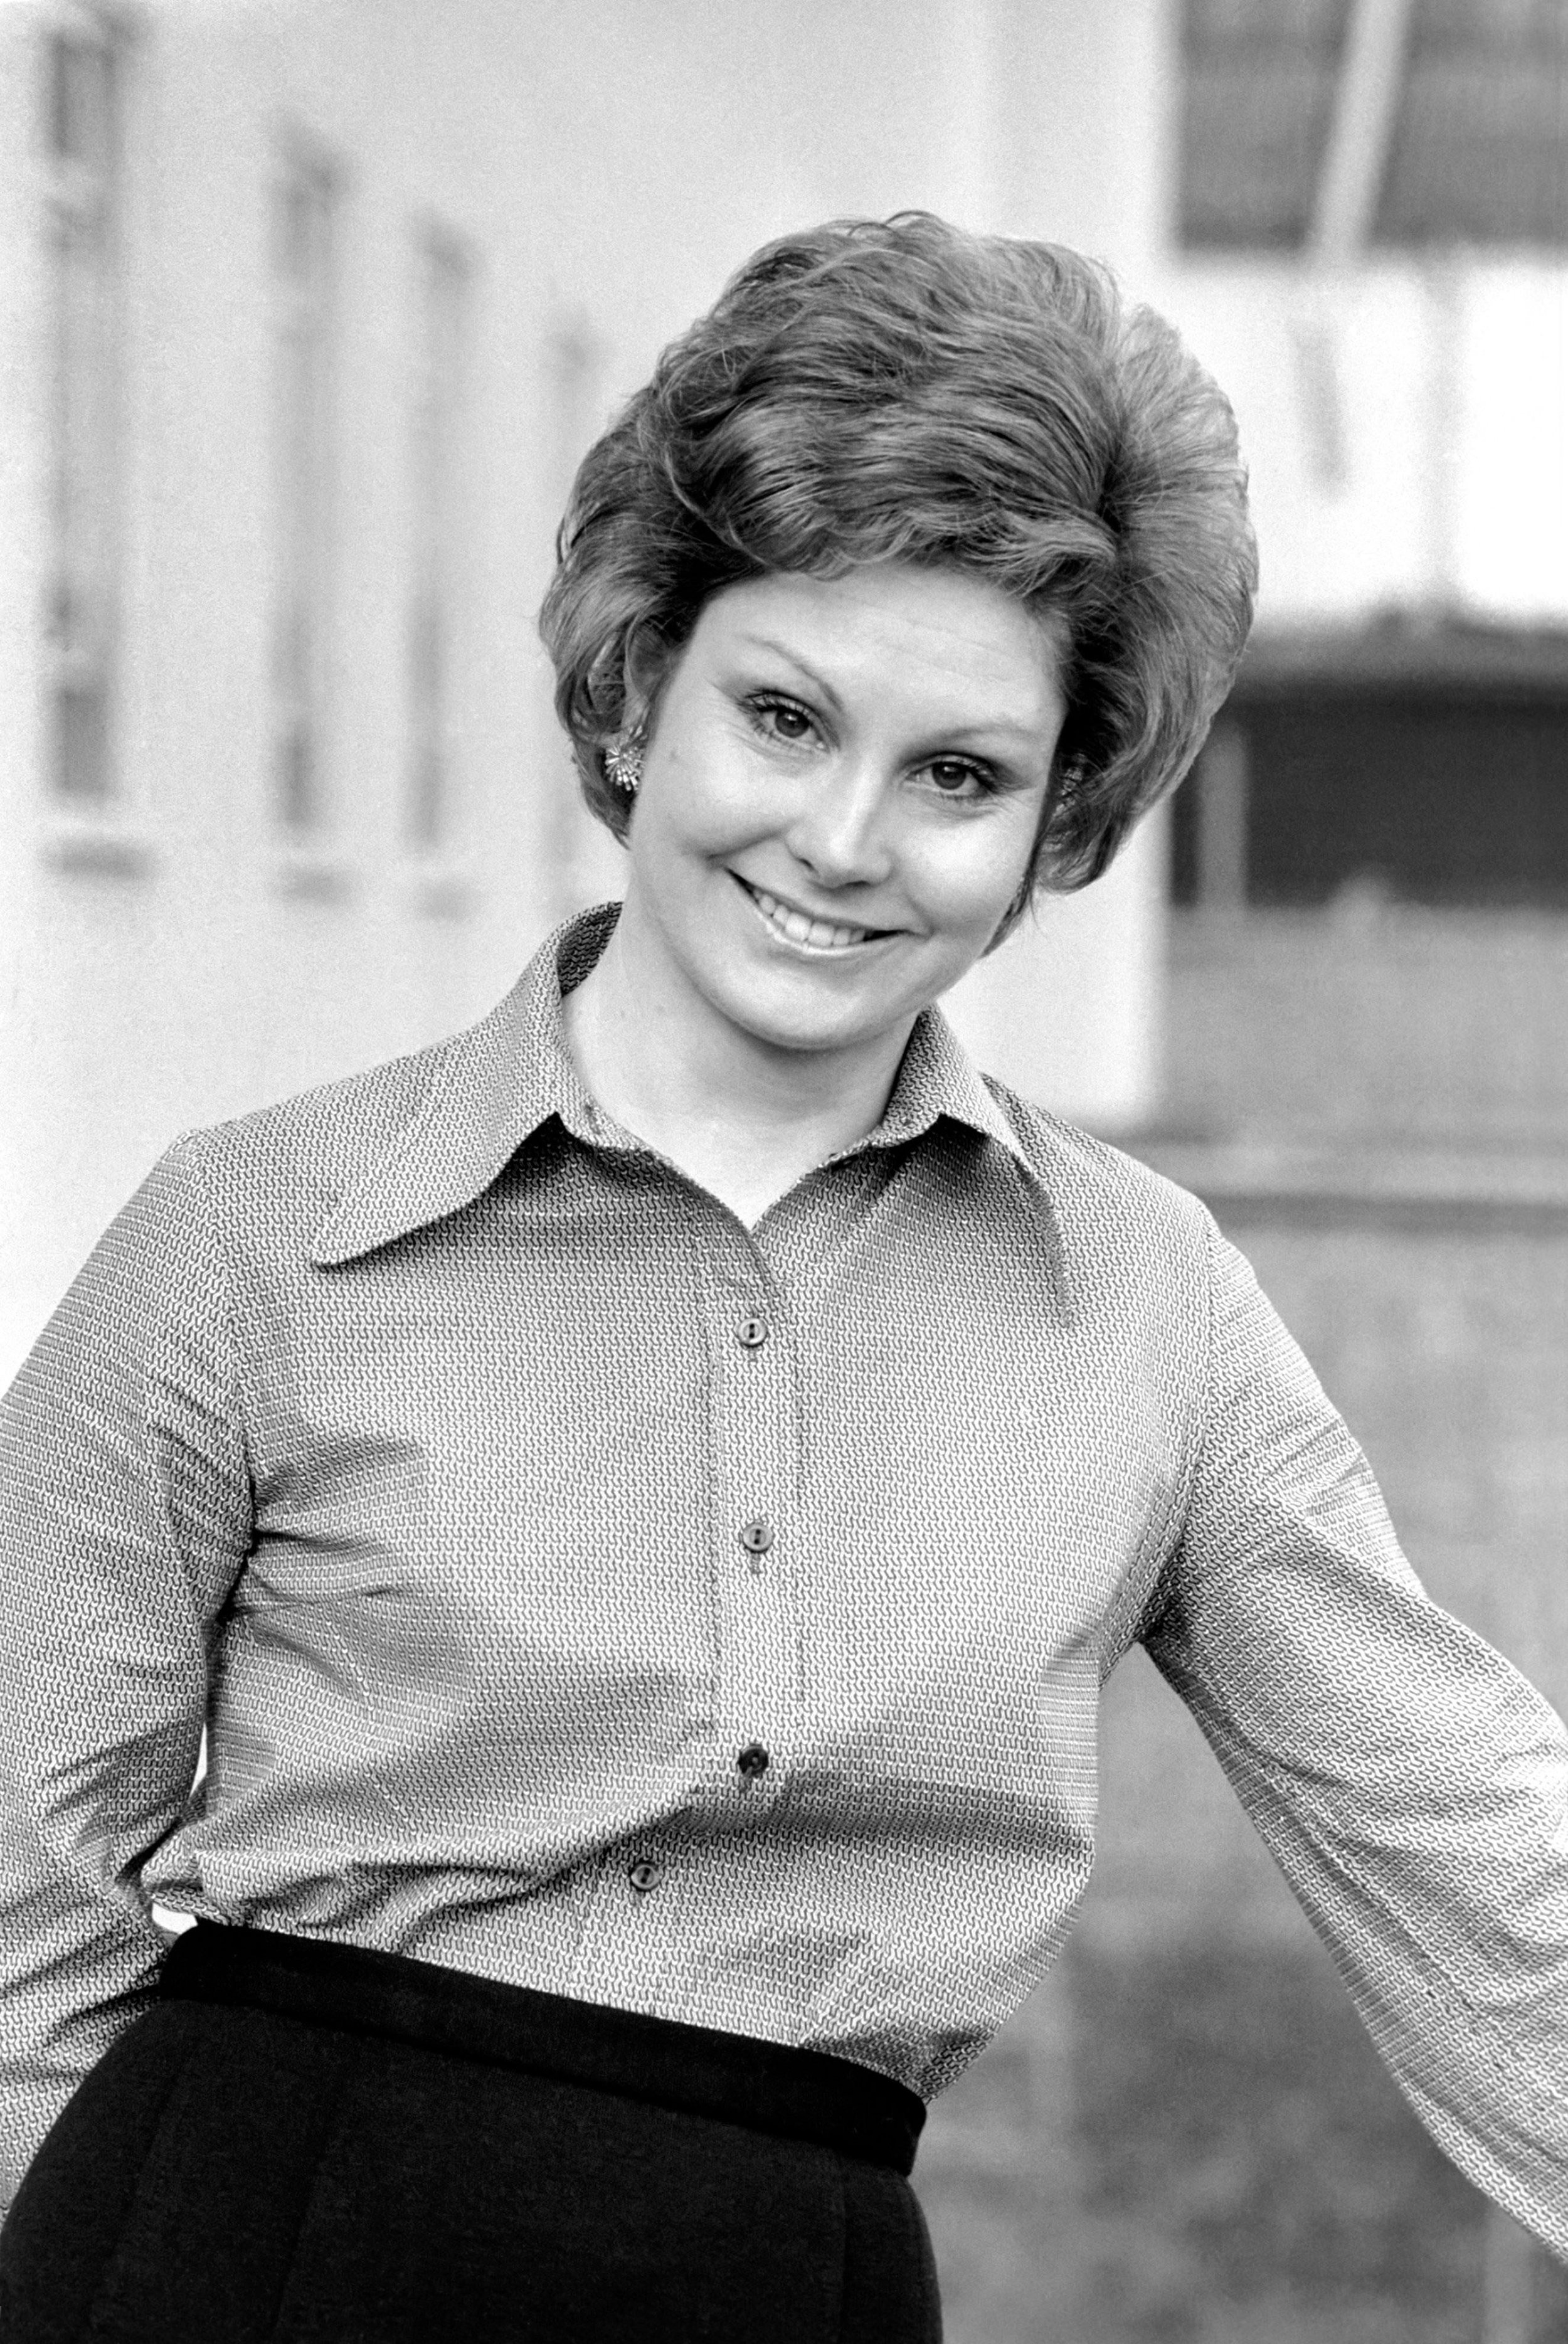 Angela in 1975